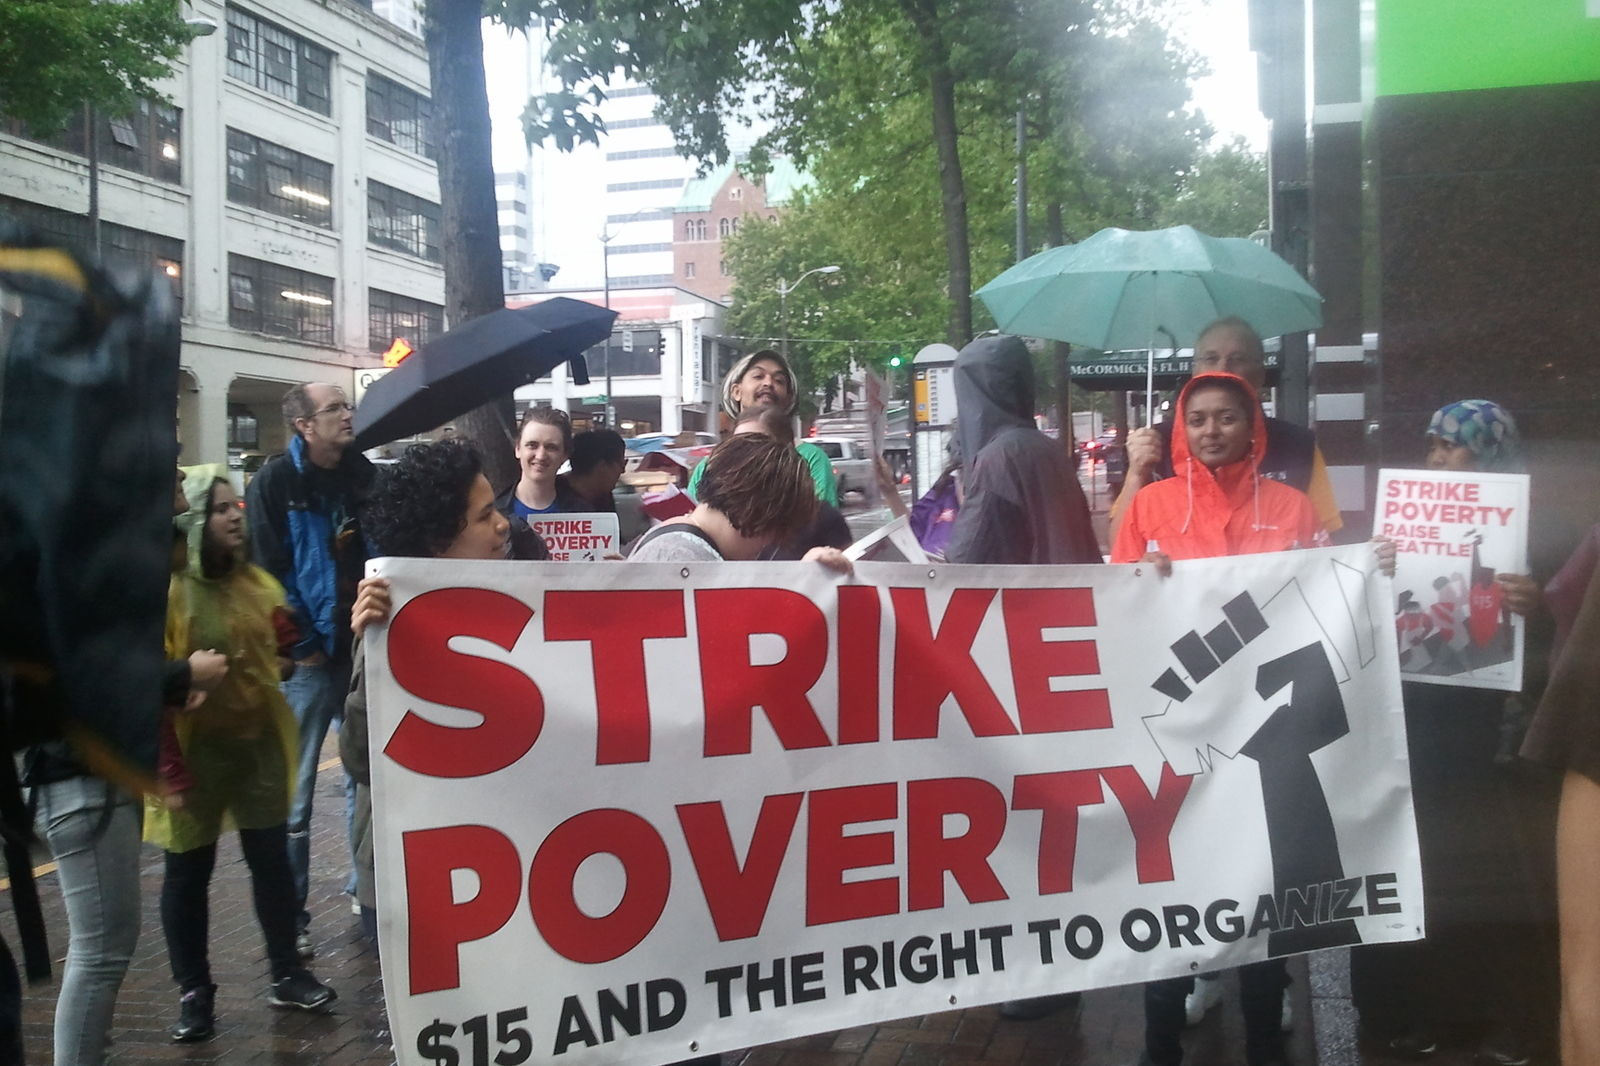 Strike poverty outside columbia tower kc95fw